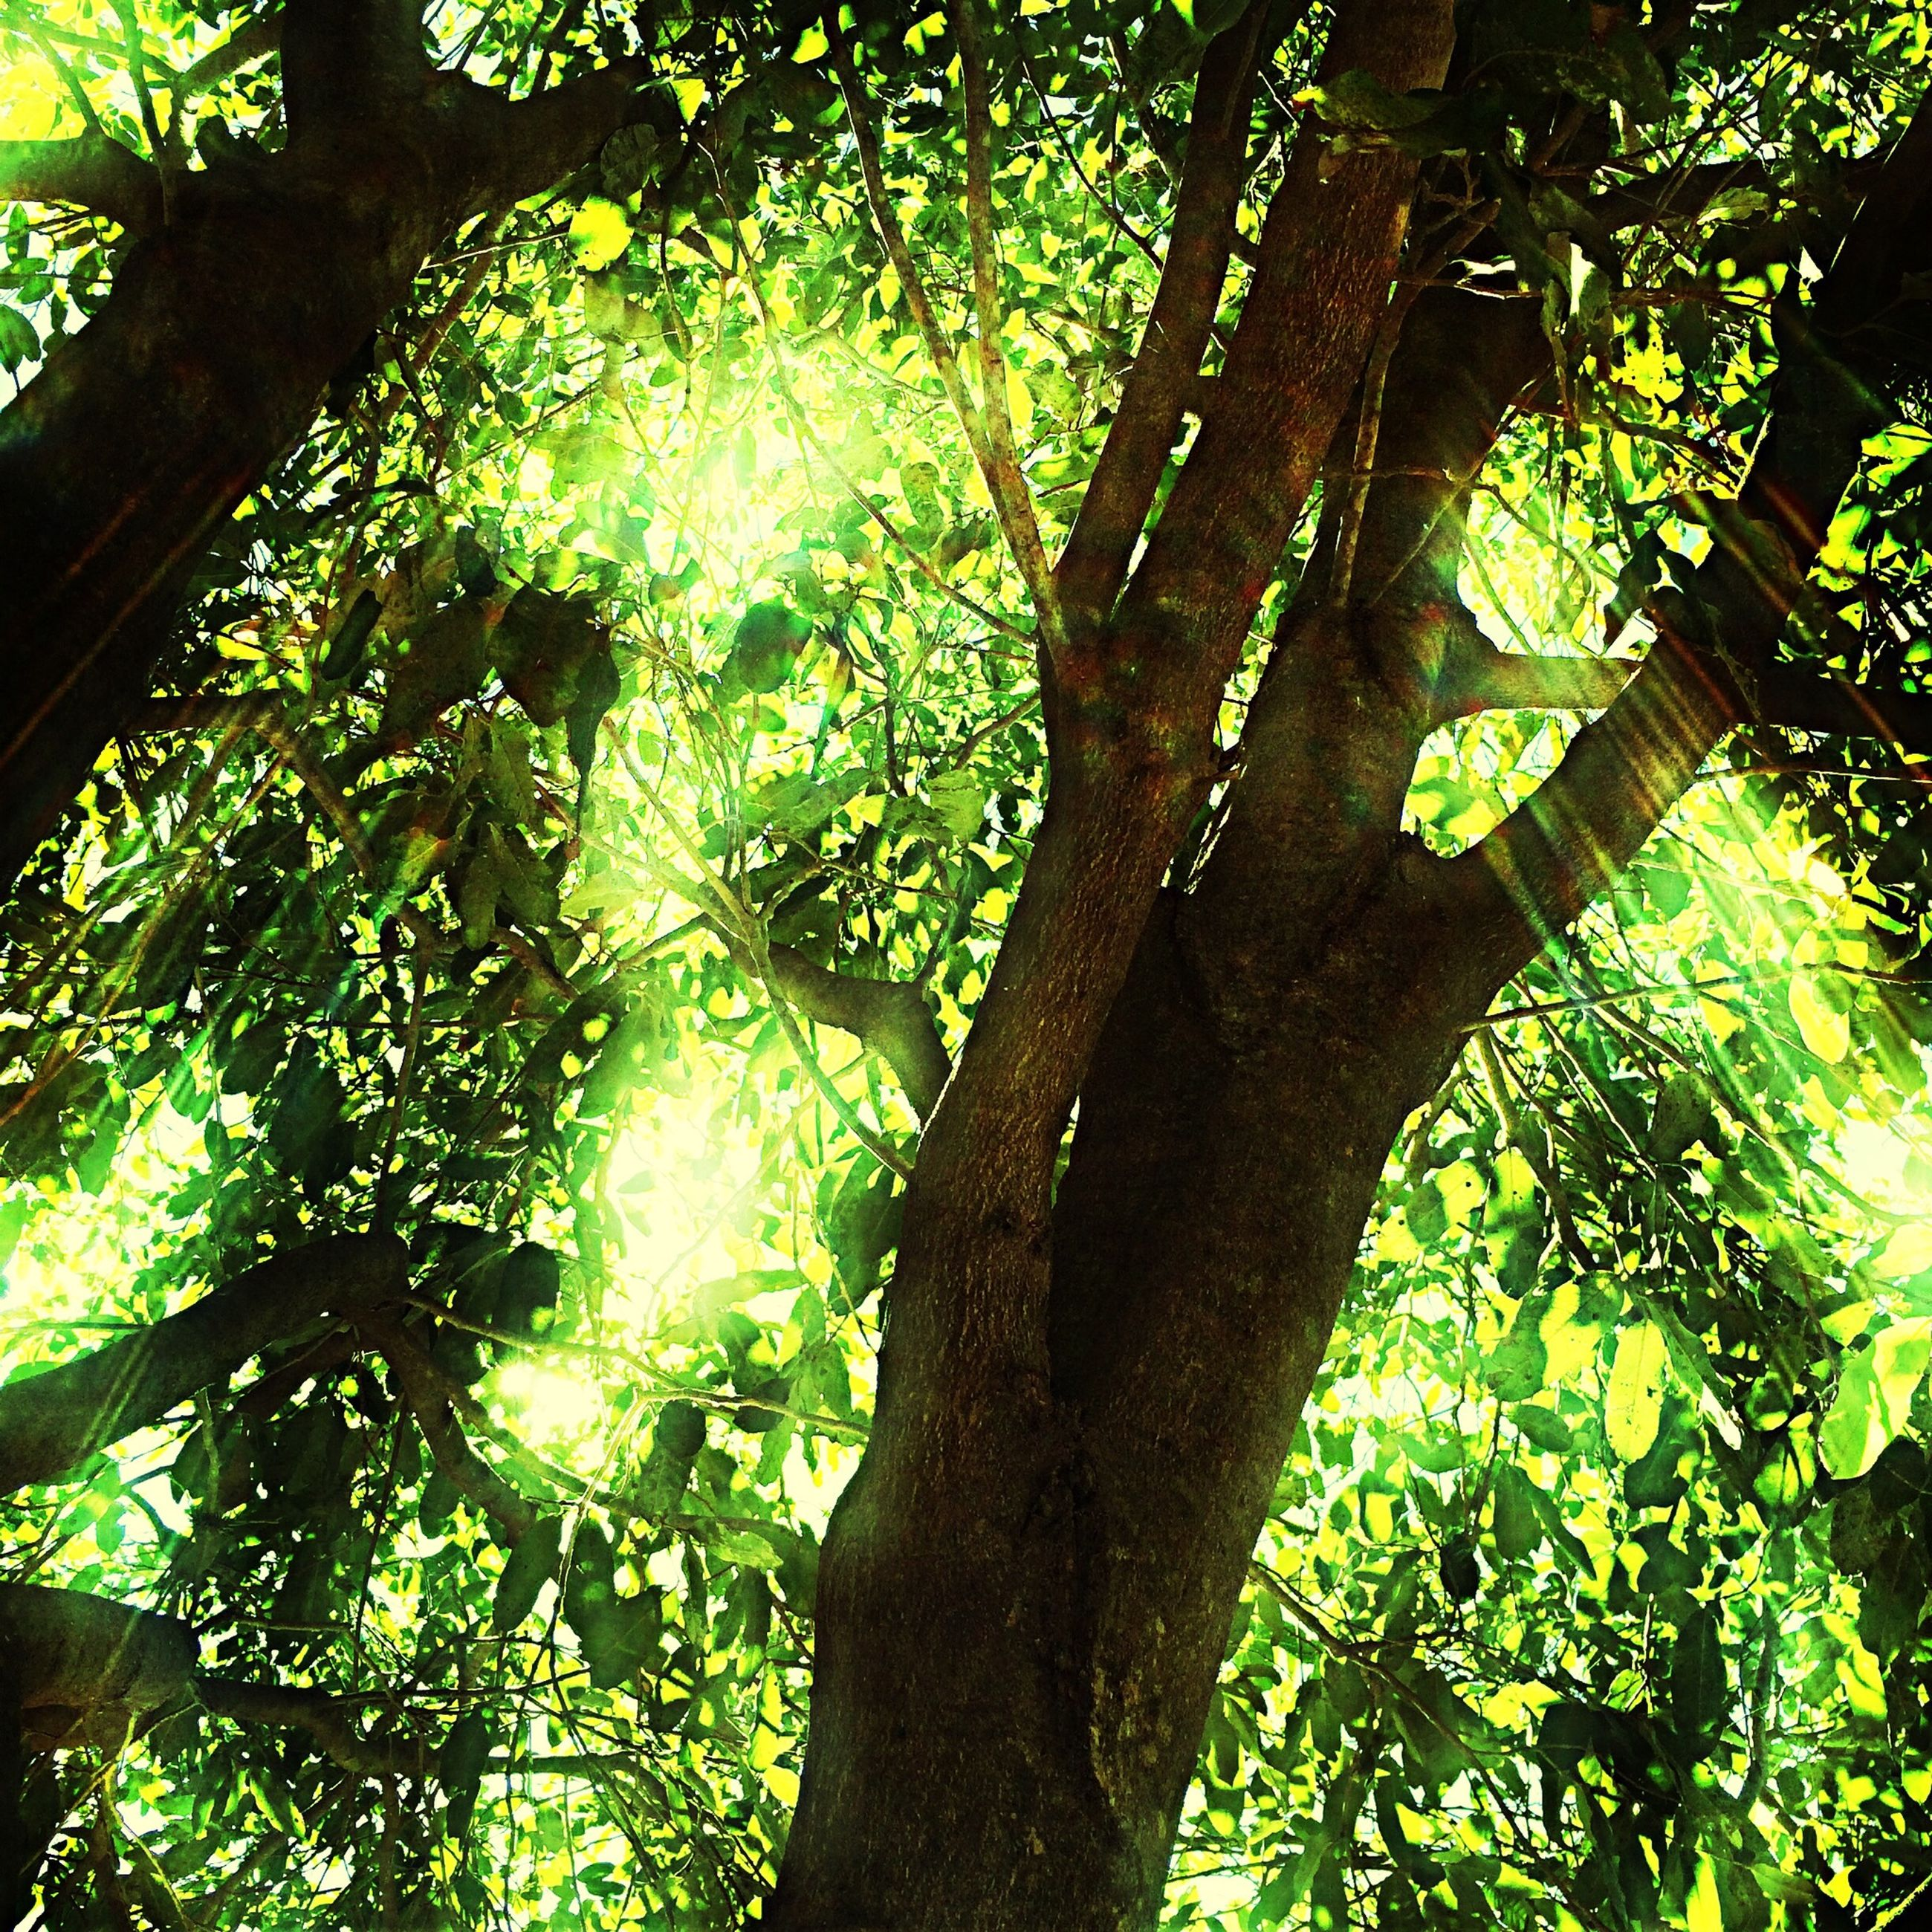 tree, low angle view, branch, growth, tree trunk, green color, nature, tranquility, leaf, forest, beauty in nature, sunlight, lush foliage, day, no people, outdoors, backgrounds, scenics, full frame, green